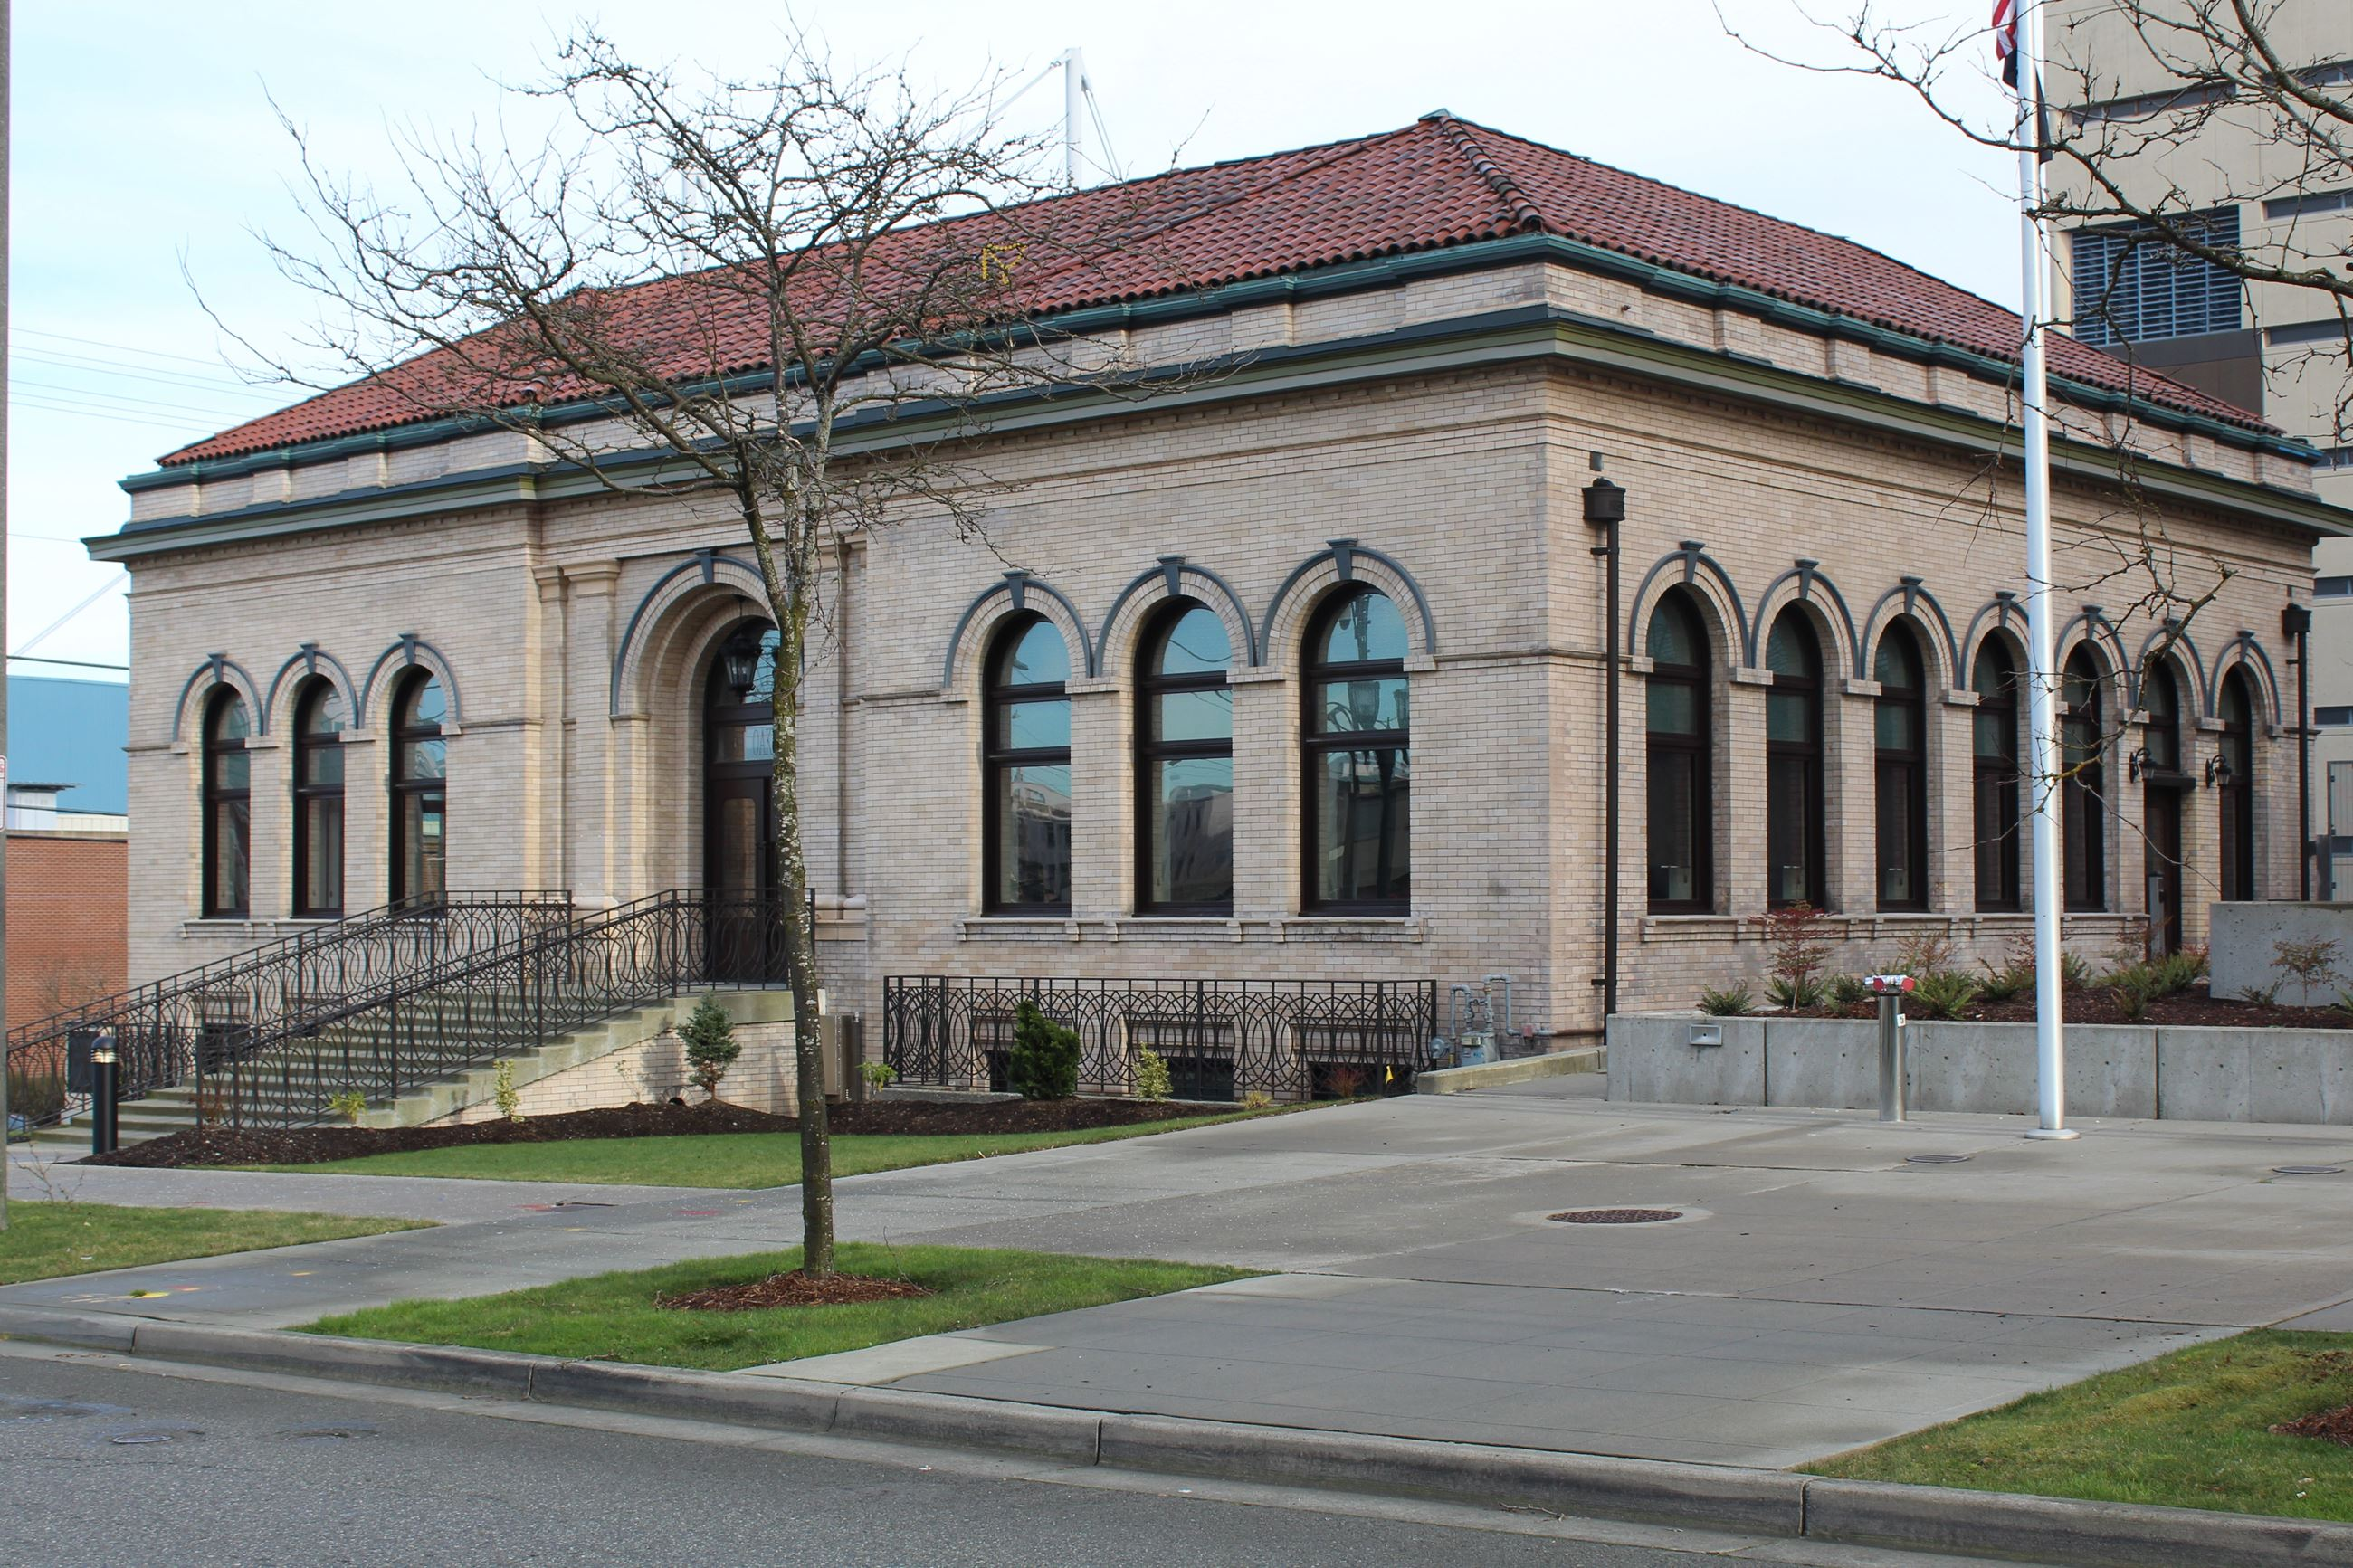 The former Carnegie Library was built in 1905 and is now home to the Carnegie Resource Center.